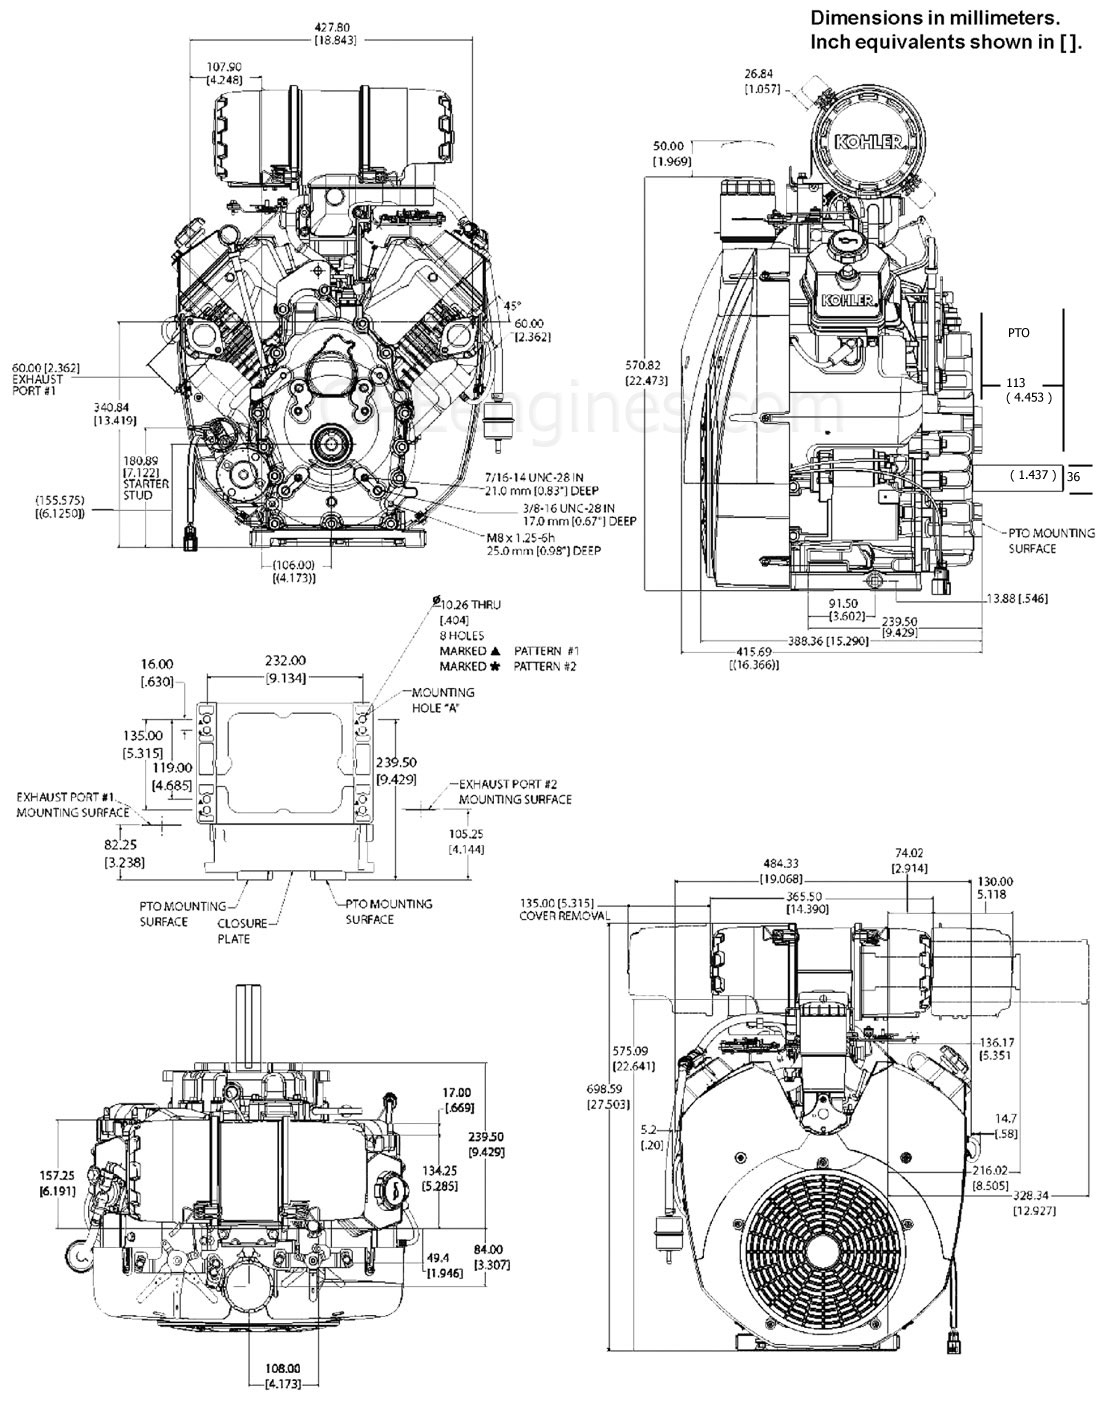 Ch940 Ch960 Ch980 Ch Drawings Kohler Engines And